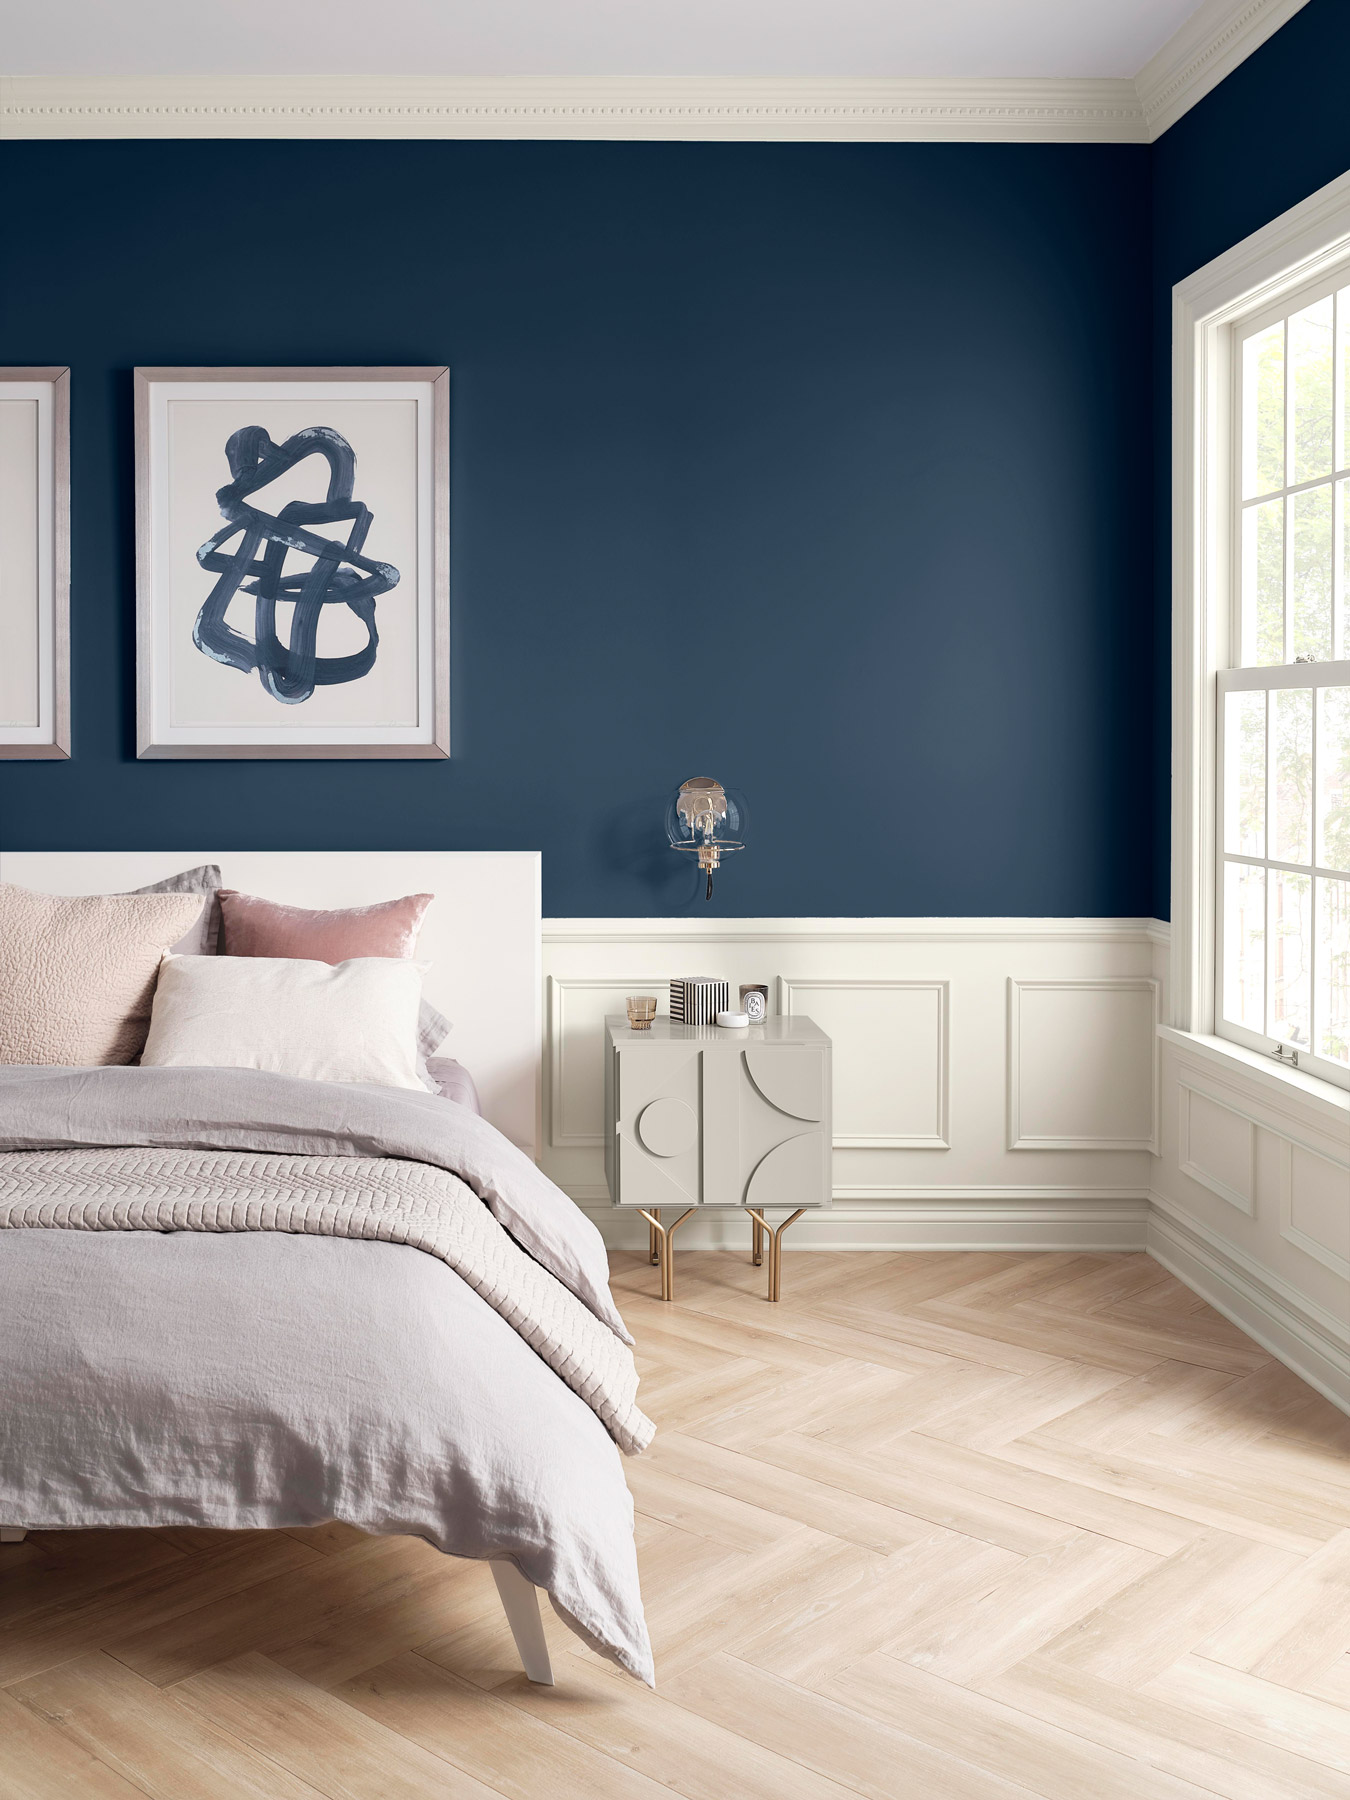 Sherwin Williams Has Announced Their Colour Of The